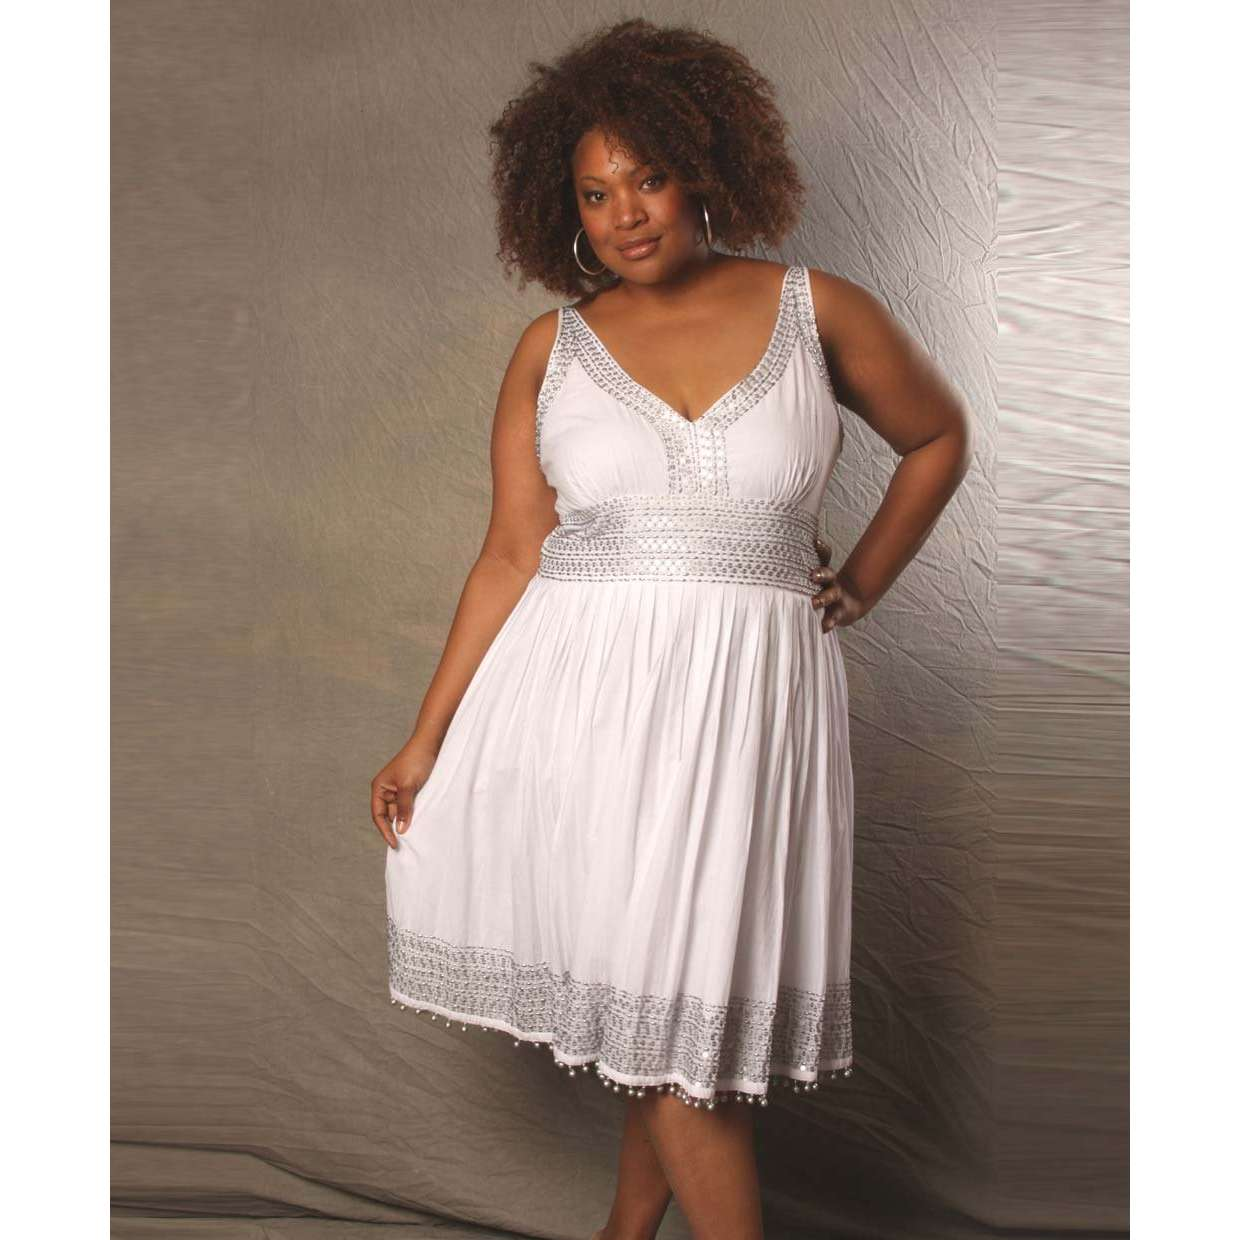 photos of plus size clothes